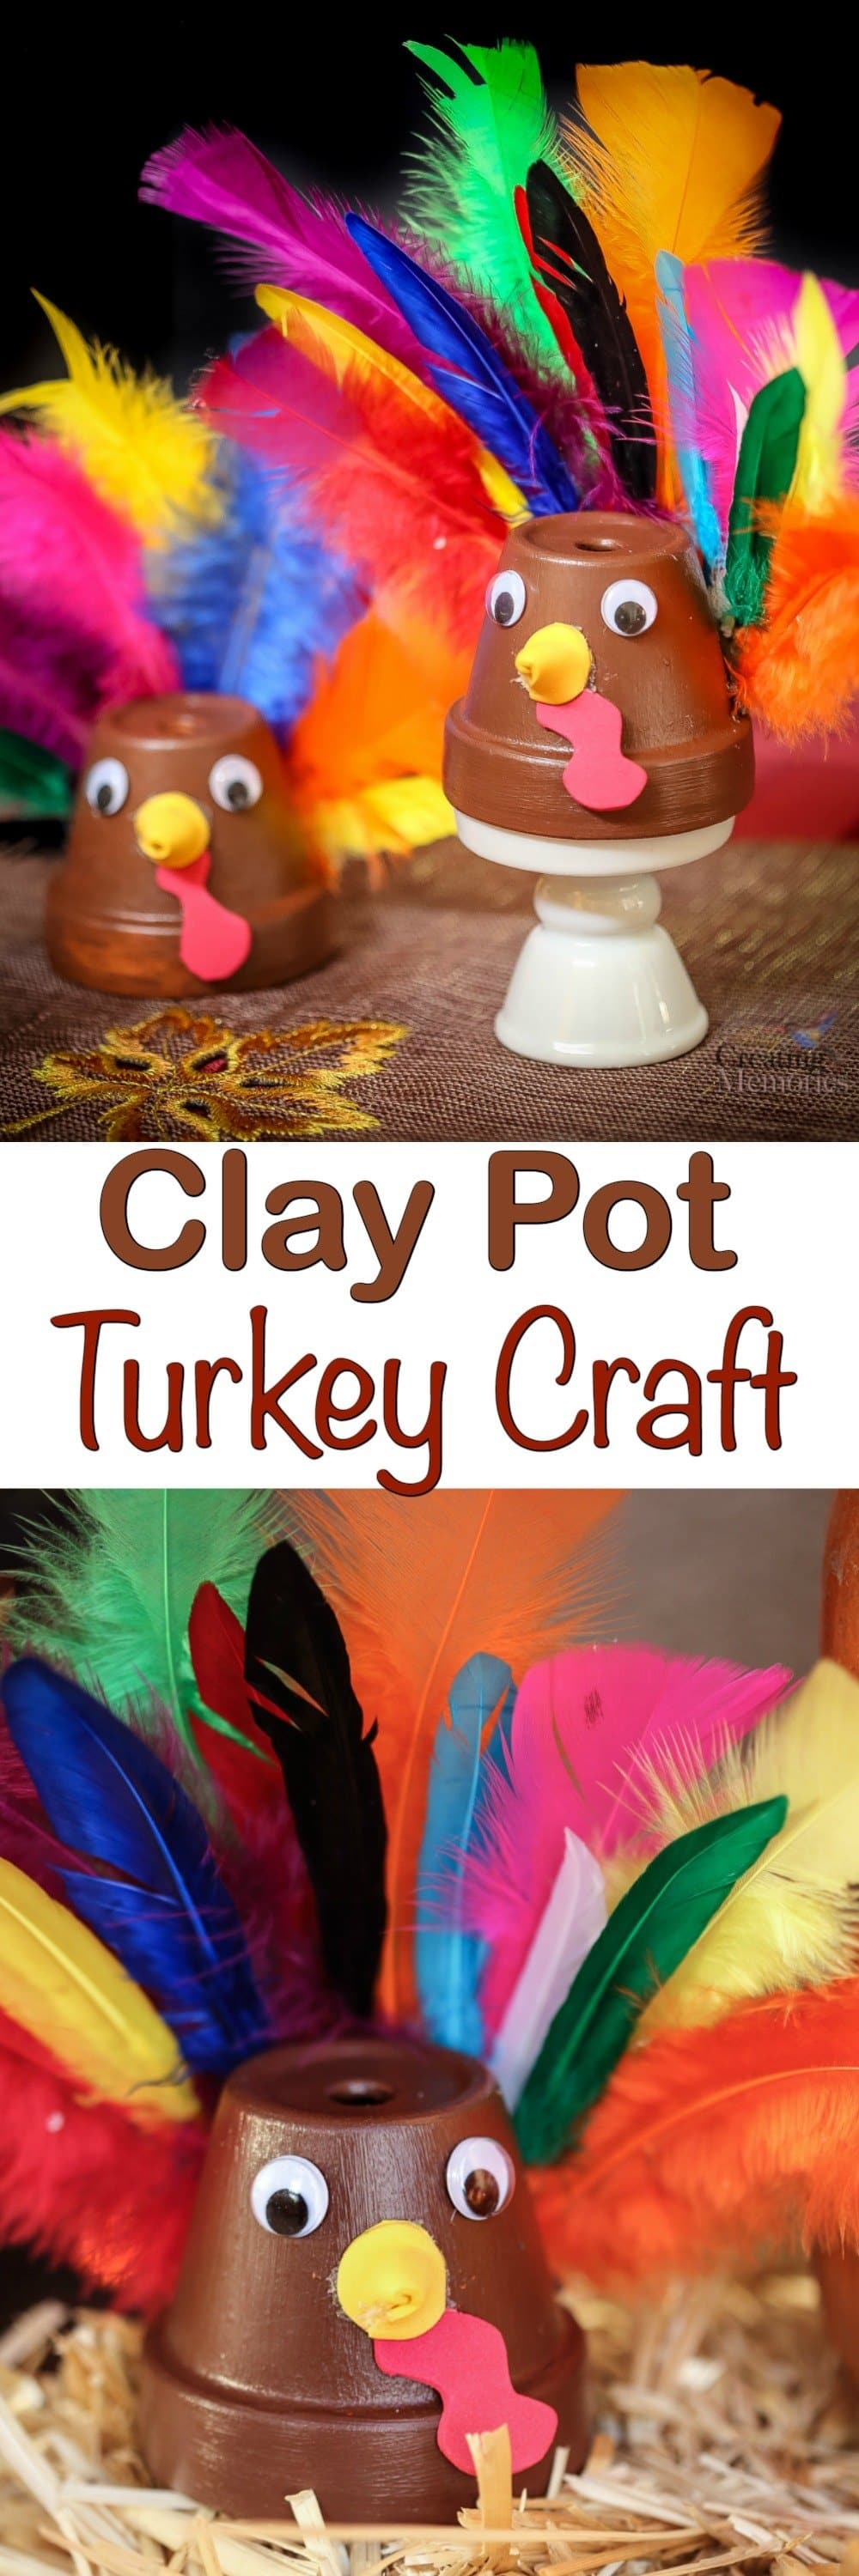 Looking for Last minute Thanksgiving crafts? You will love this easy Clay Pot Turkey Craft using a Terra cotta pot! It makes a fun craft for kids or adults!